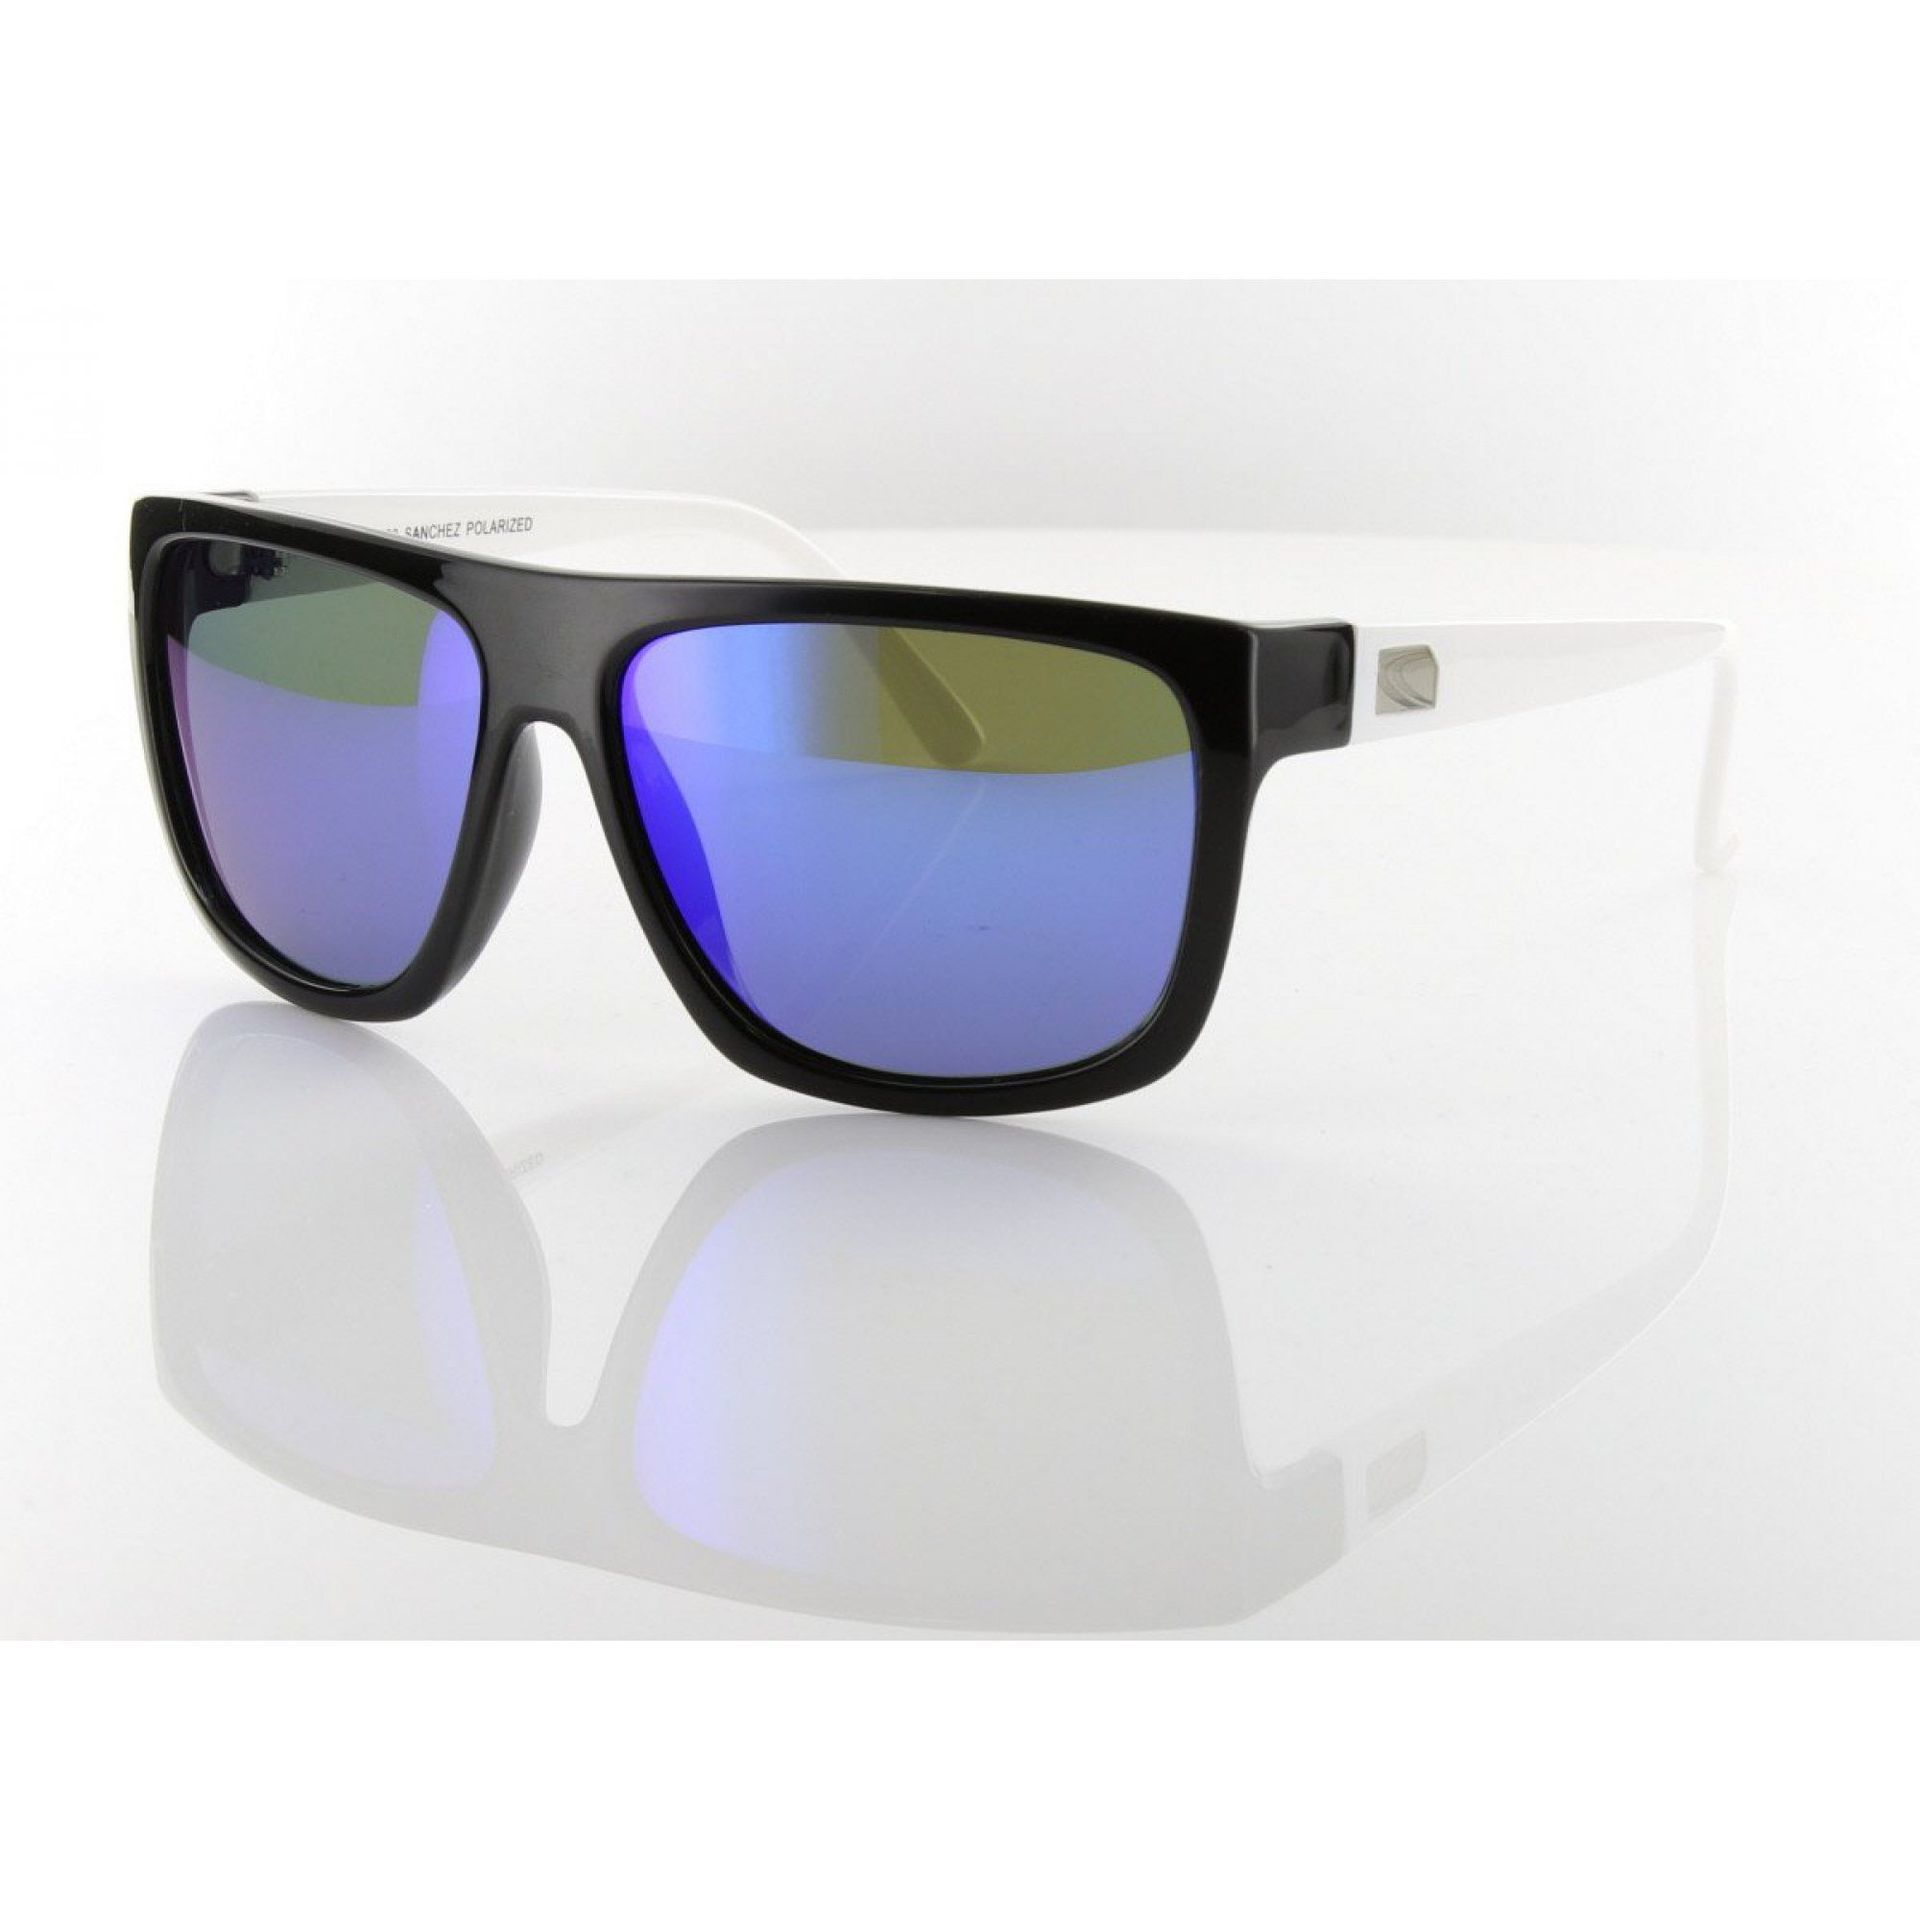 OKULARY CARVE SANCHEZ POLARIZED REVO 1